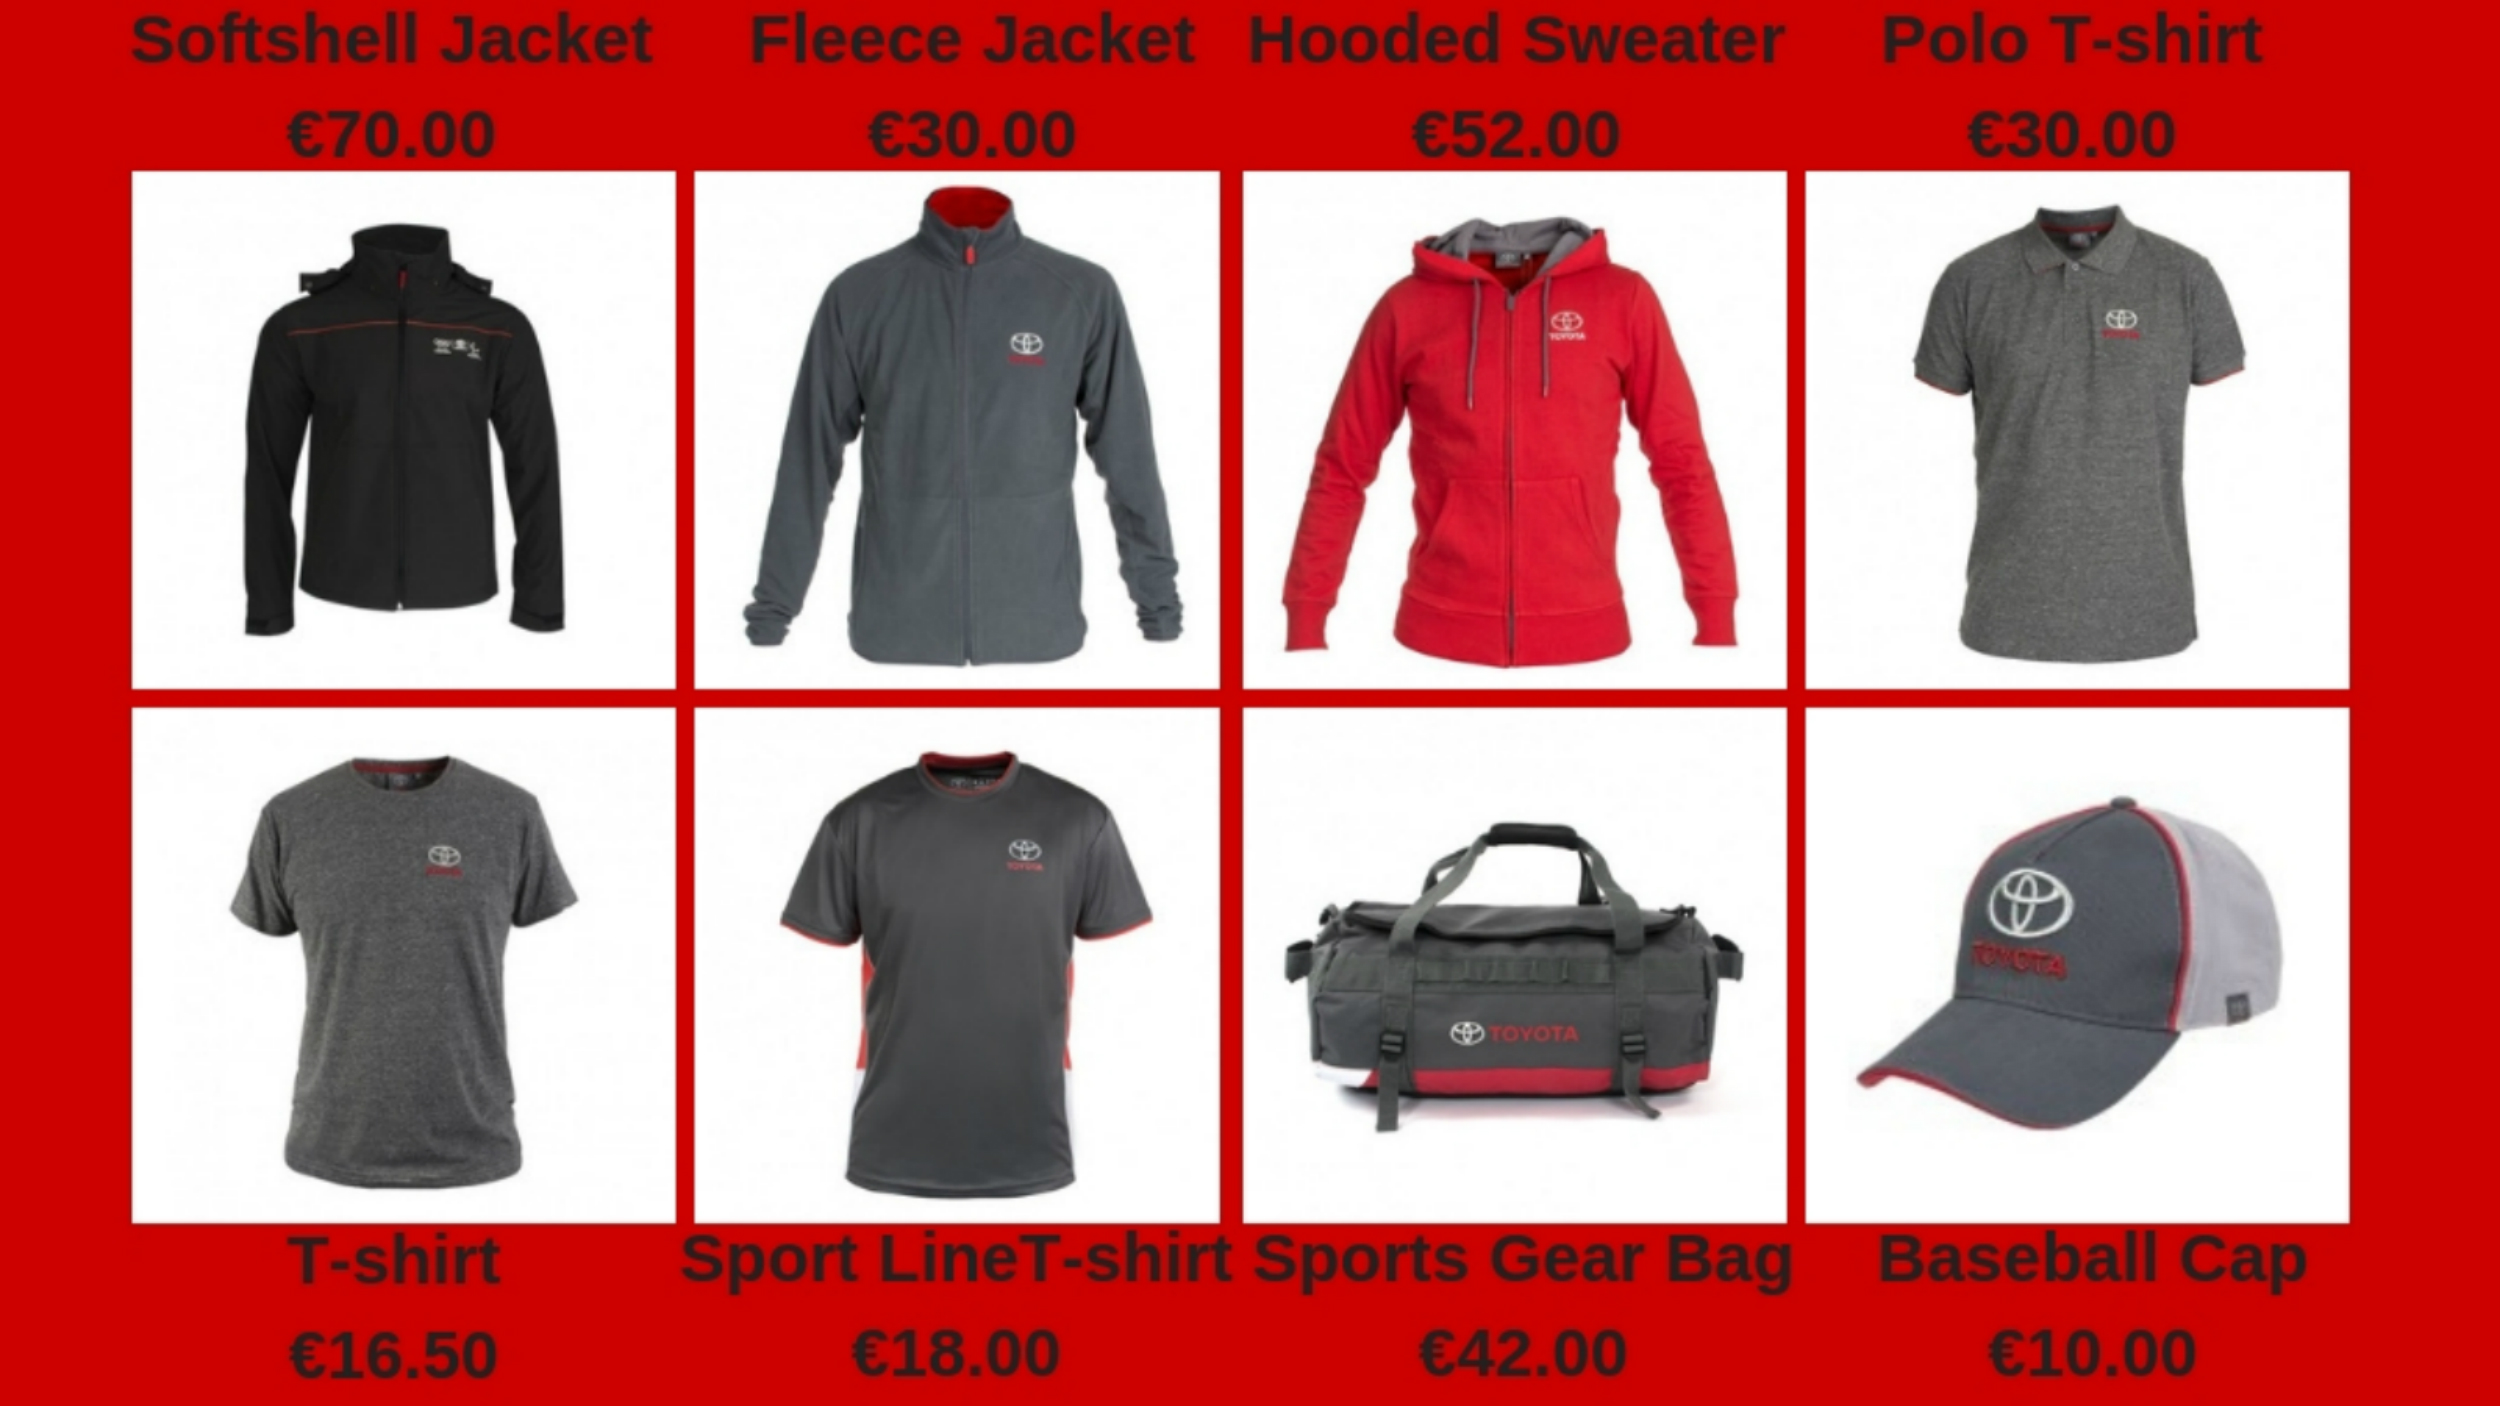 Toyota Men's Merchandise